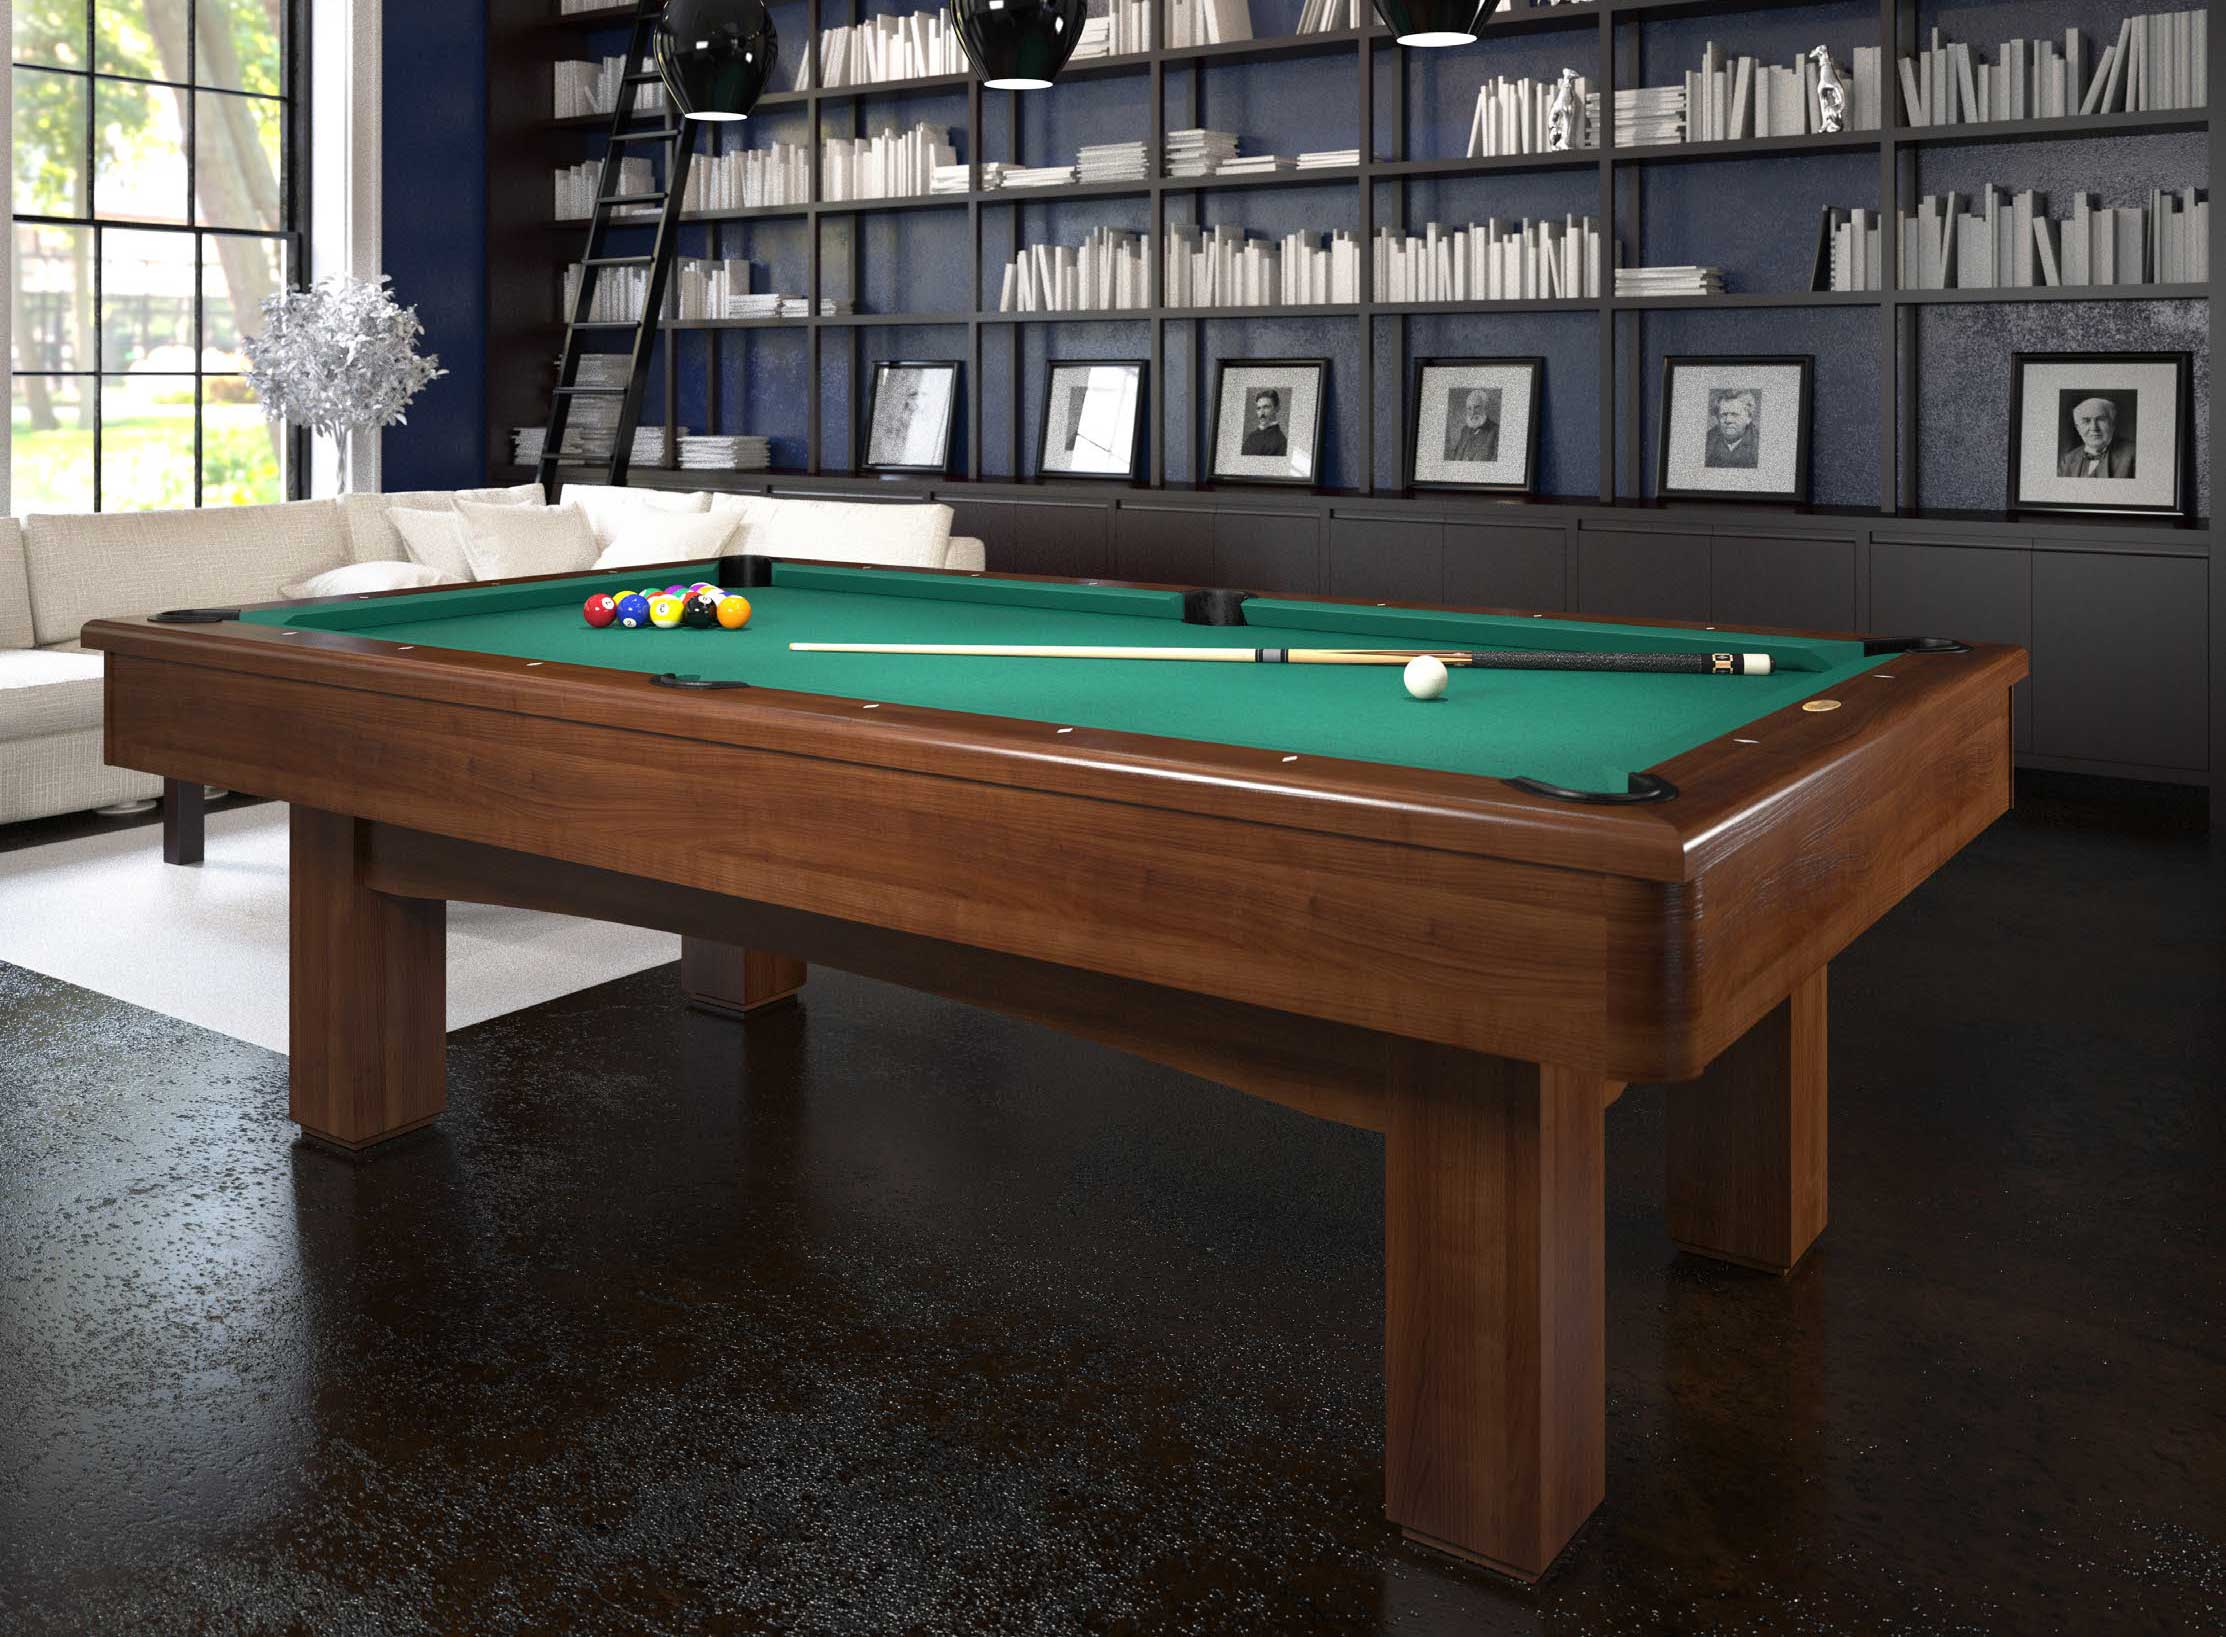 How To Install A Pool Table Slate Installation Home Billiards >> Dk Billiard Service Pool Tables For Sale Billiard Supplies